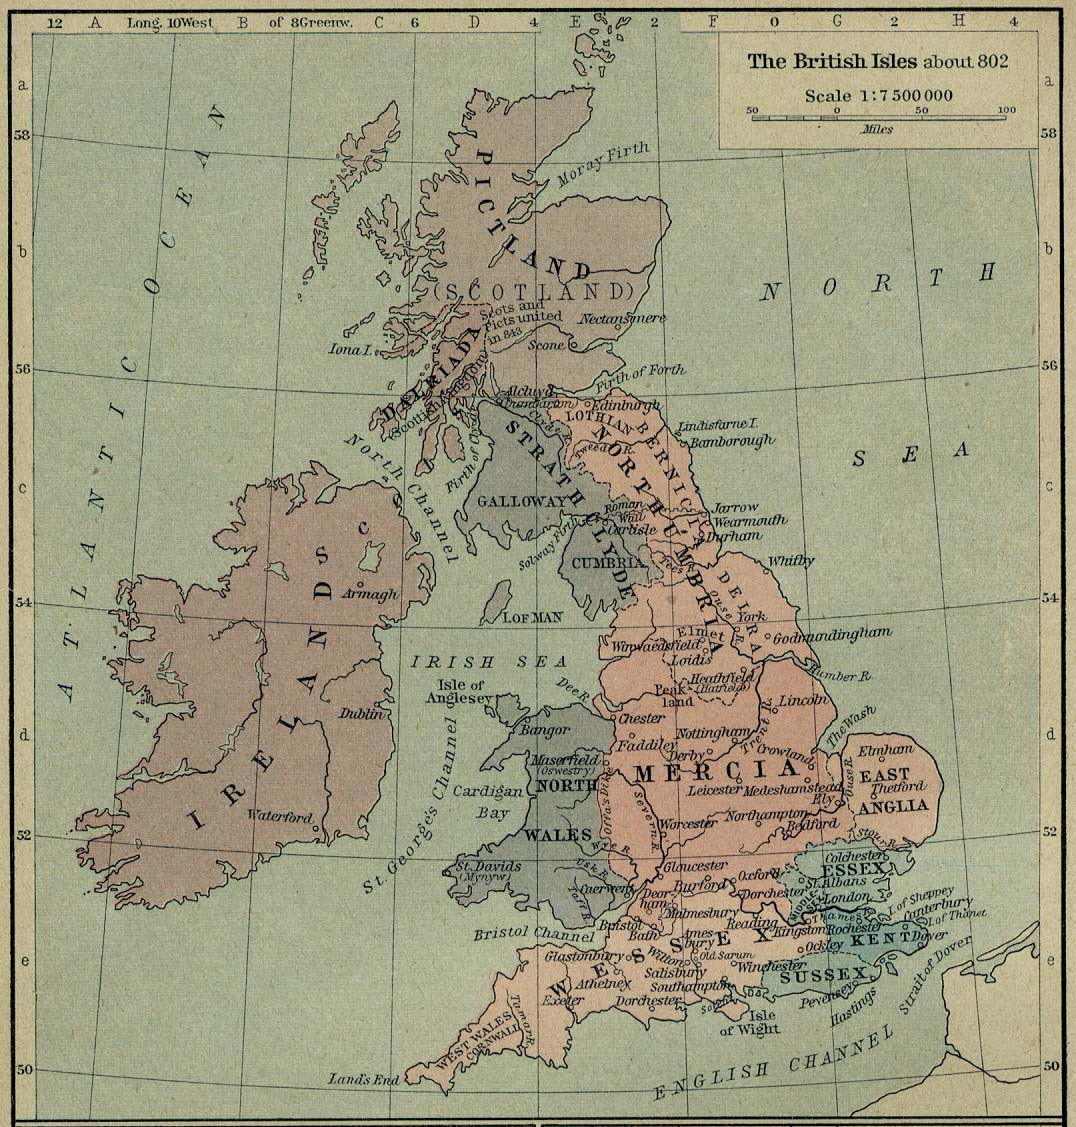 File:British isles 802.jpg - Wikipedia, the free encyclopedia